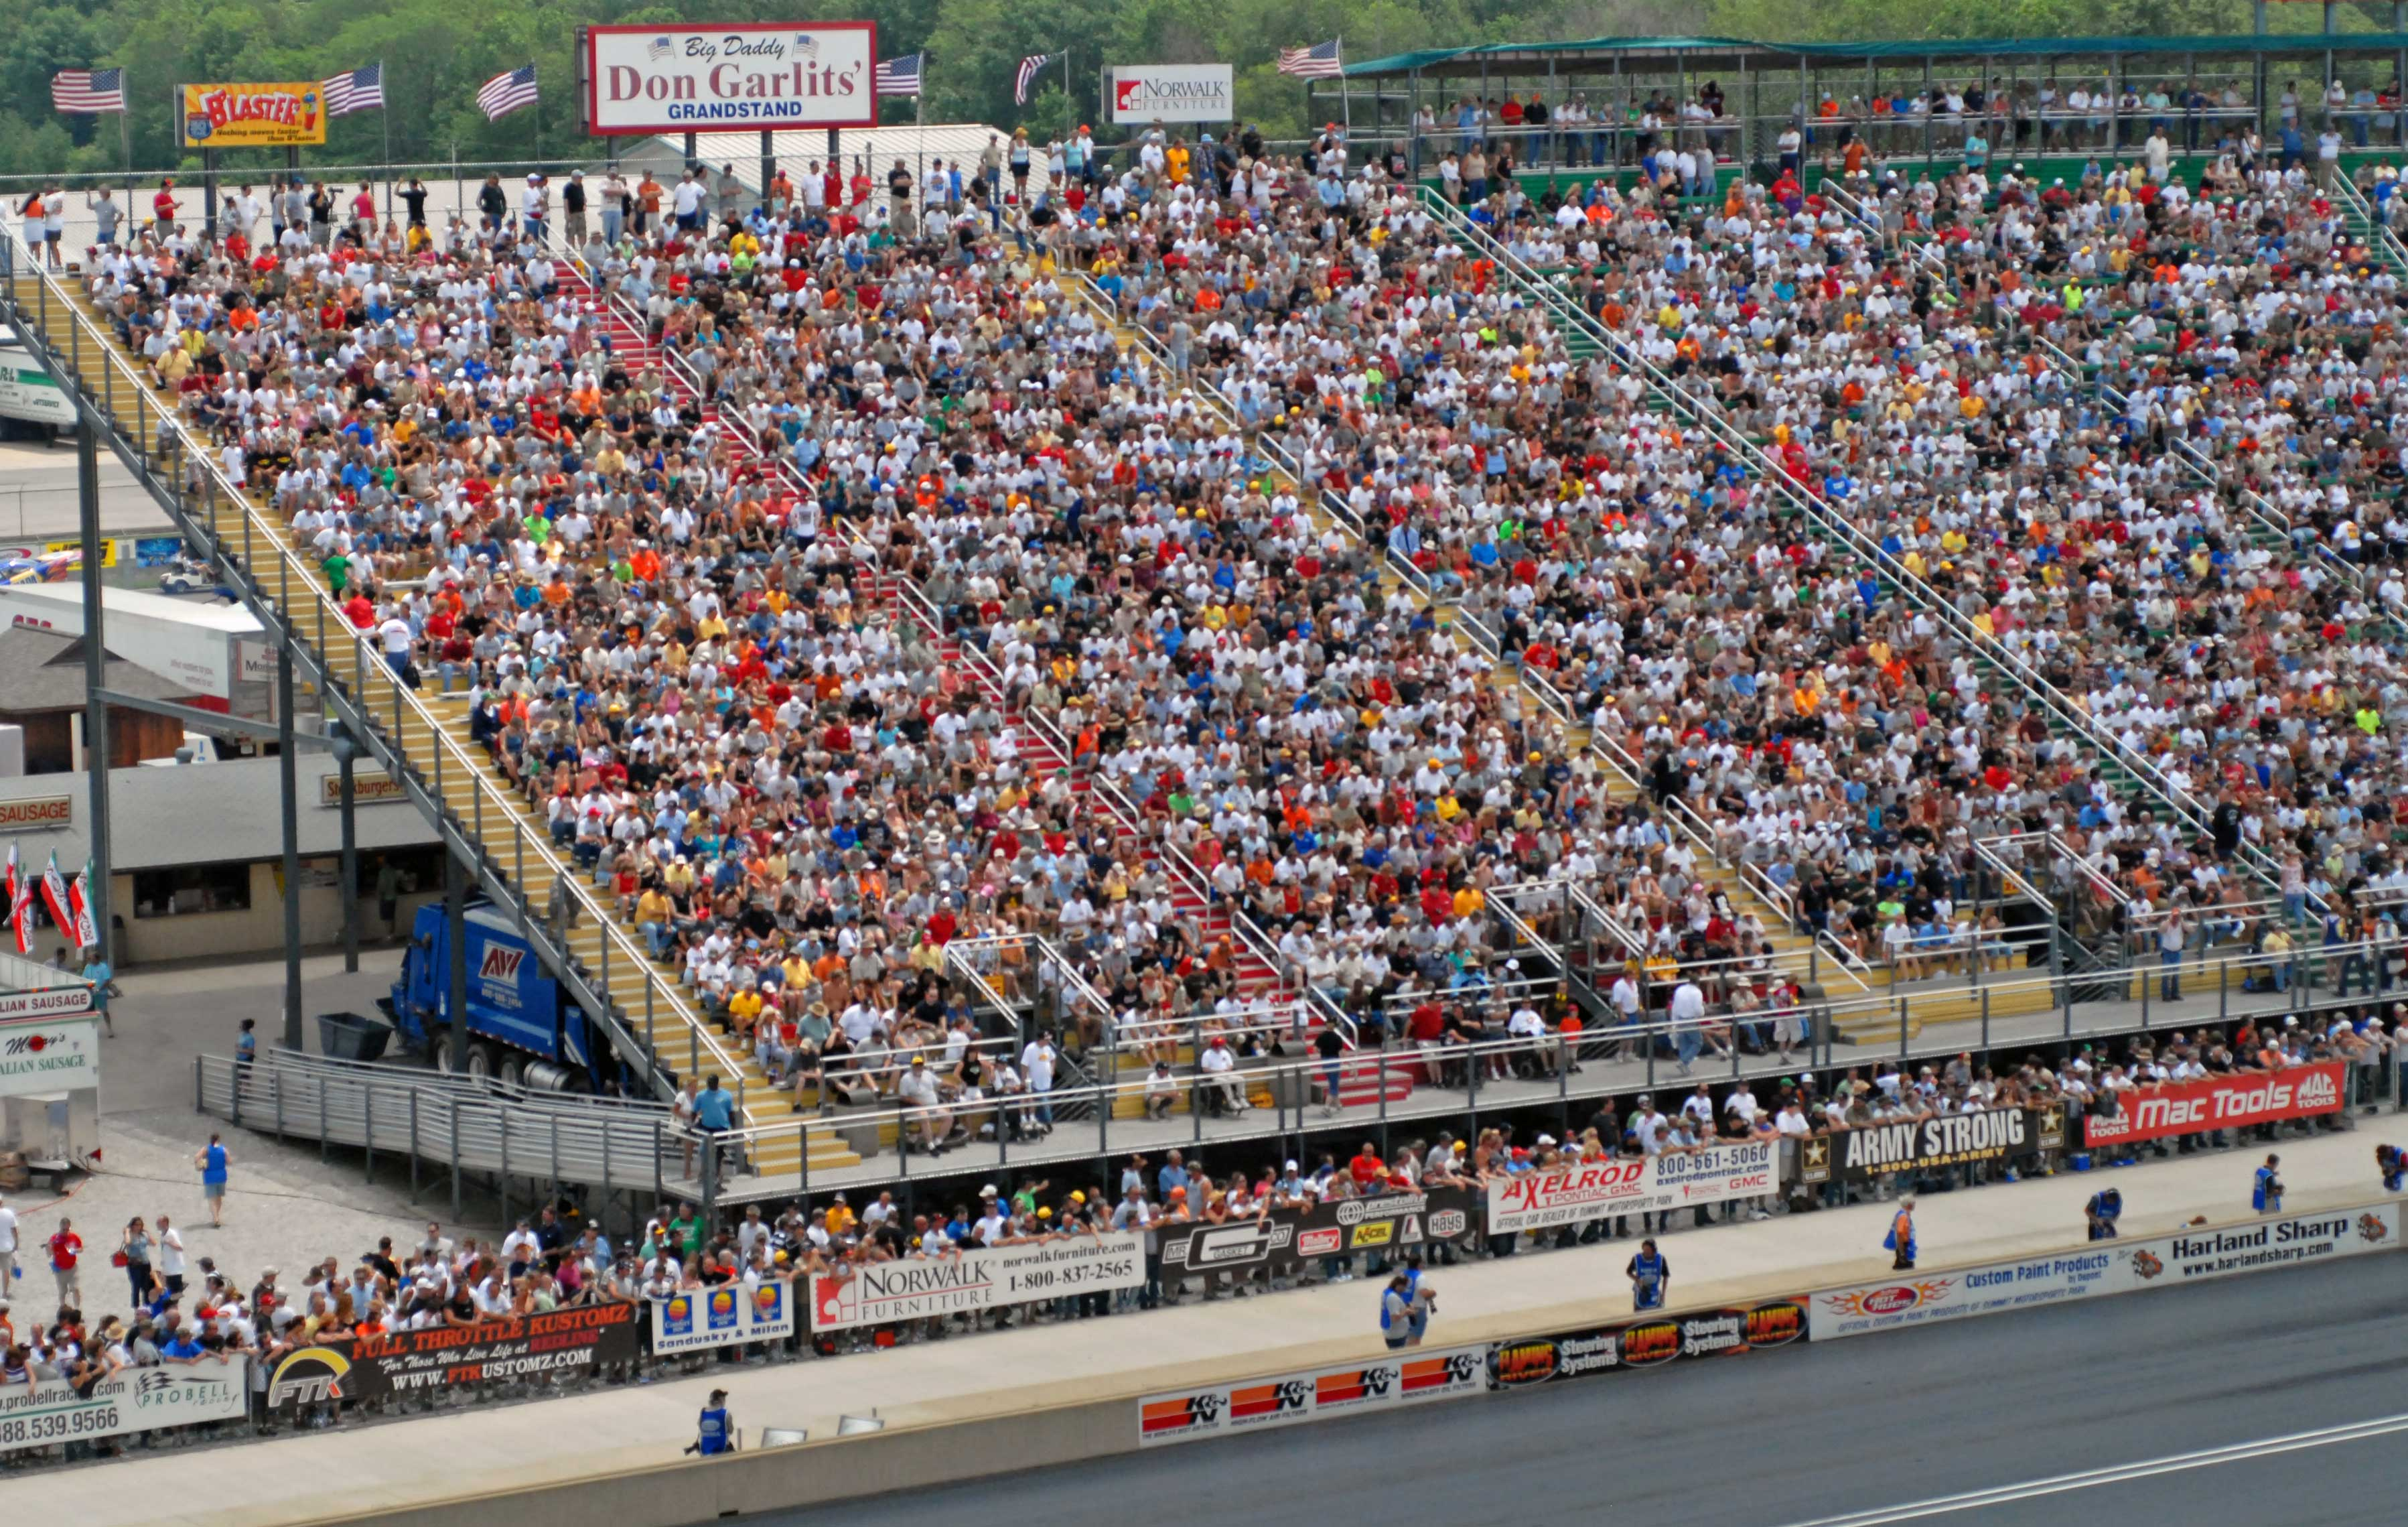 Suite view at NHRA Summit Racing Equipment Nationals in Norwalk, Ohio